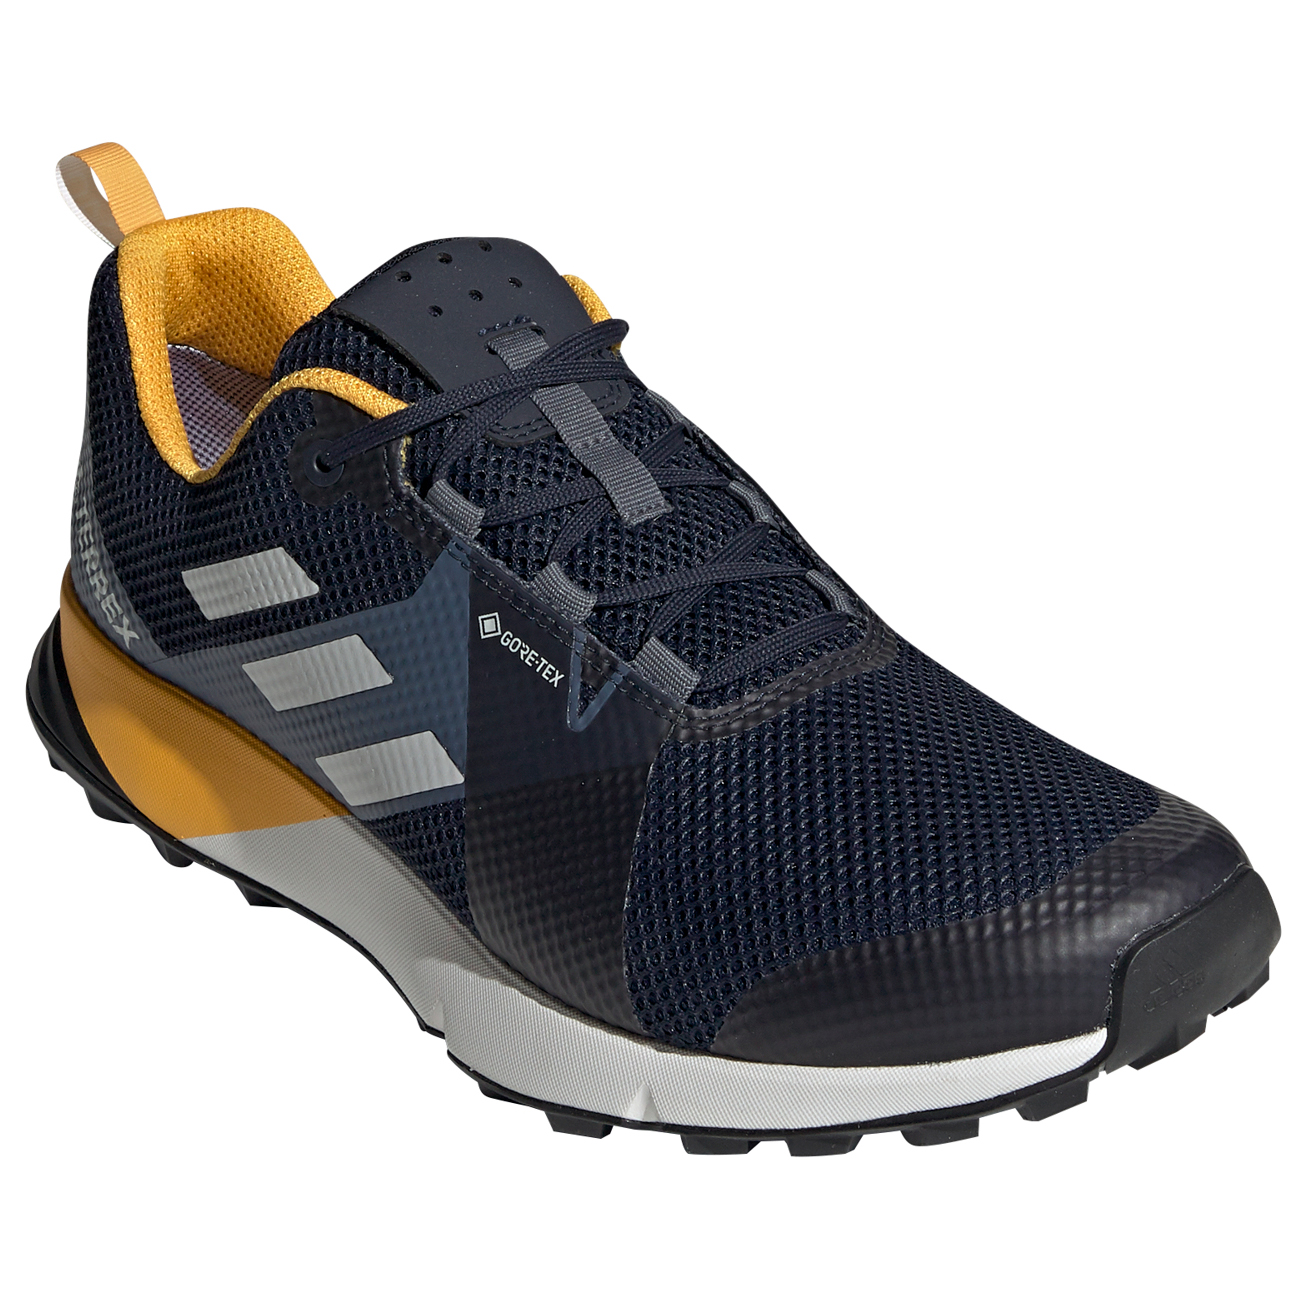 Terrex Two Trail Running Shoes